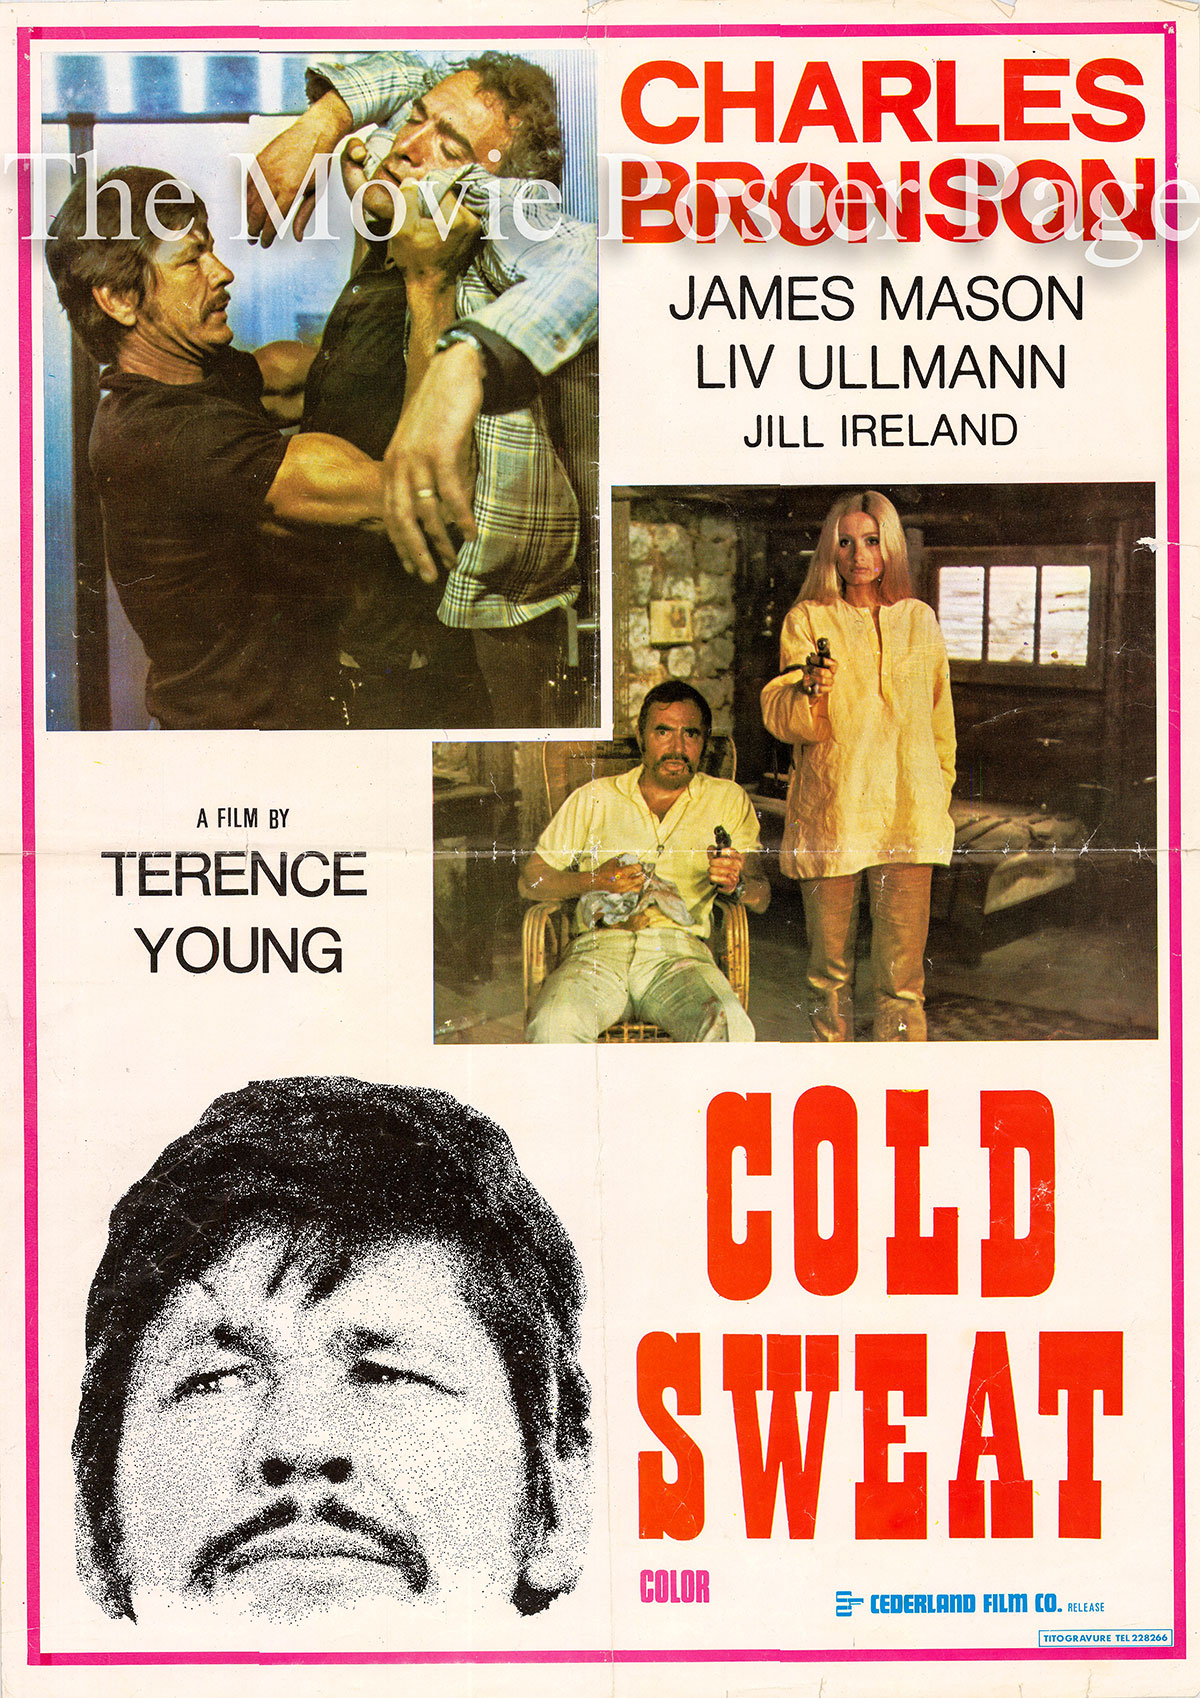 Pictured is an Lebanese promotional poster for the 1970 Terence Young film Cold Sweat, starring Charles Bronson.